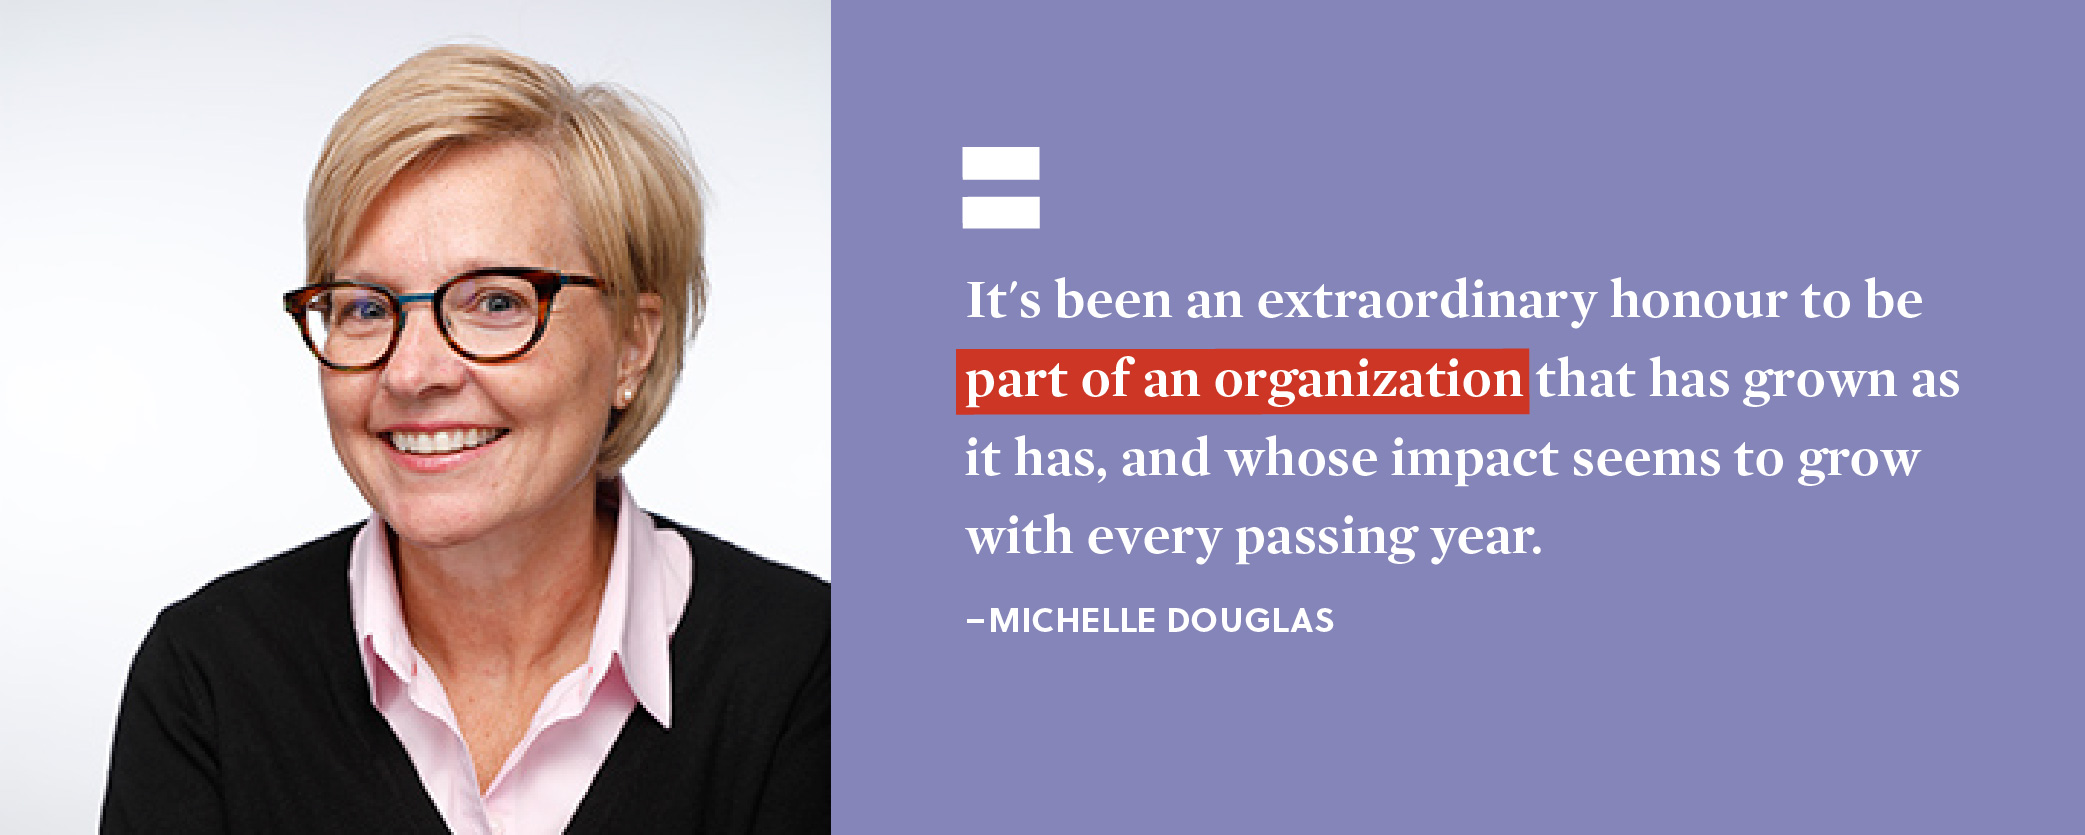 Quote. It's been an extraordinary honour to be part of an organization that has grown as it has, and whose impact seems to grow with every passing year. Unquote. Michelle Douglas.